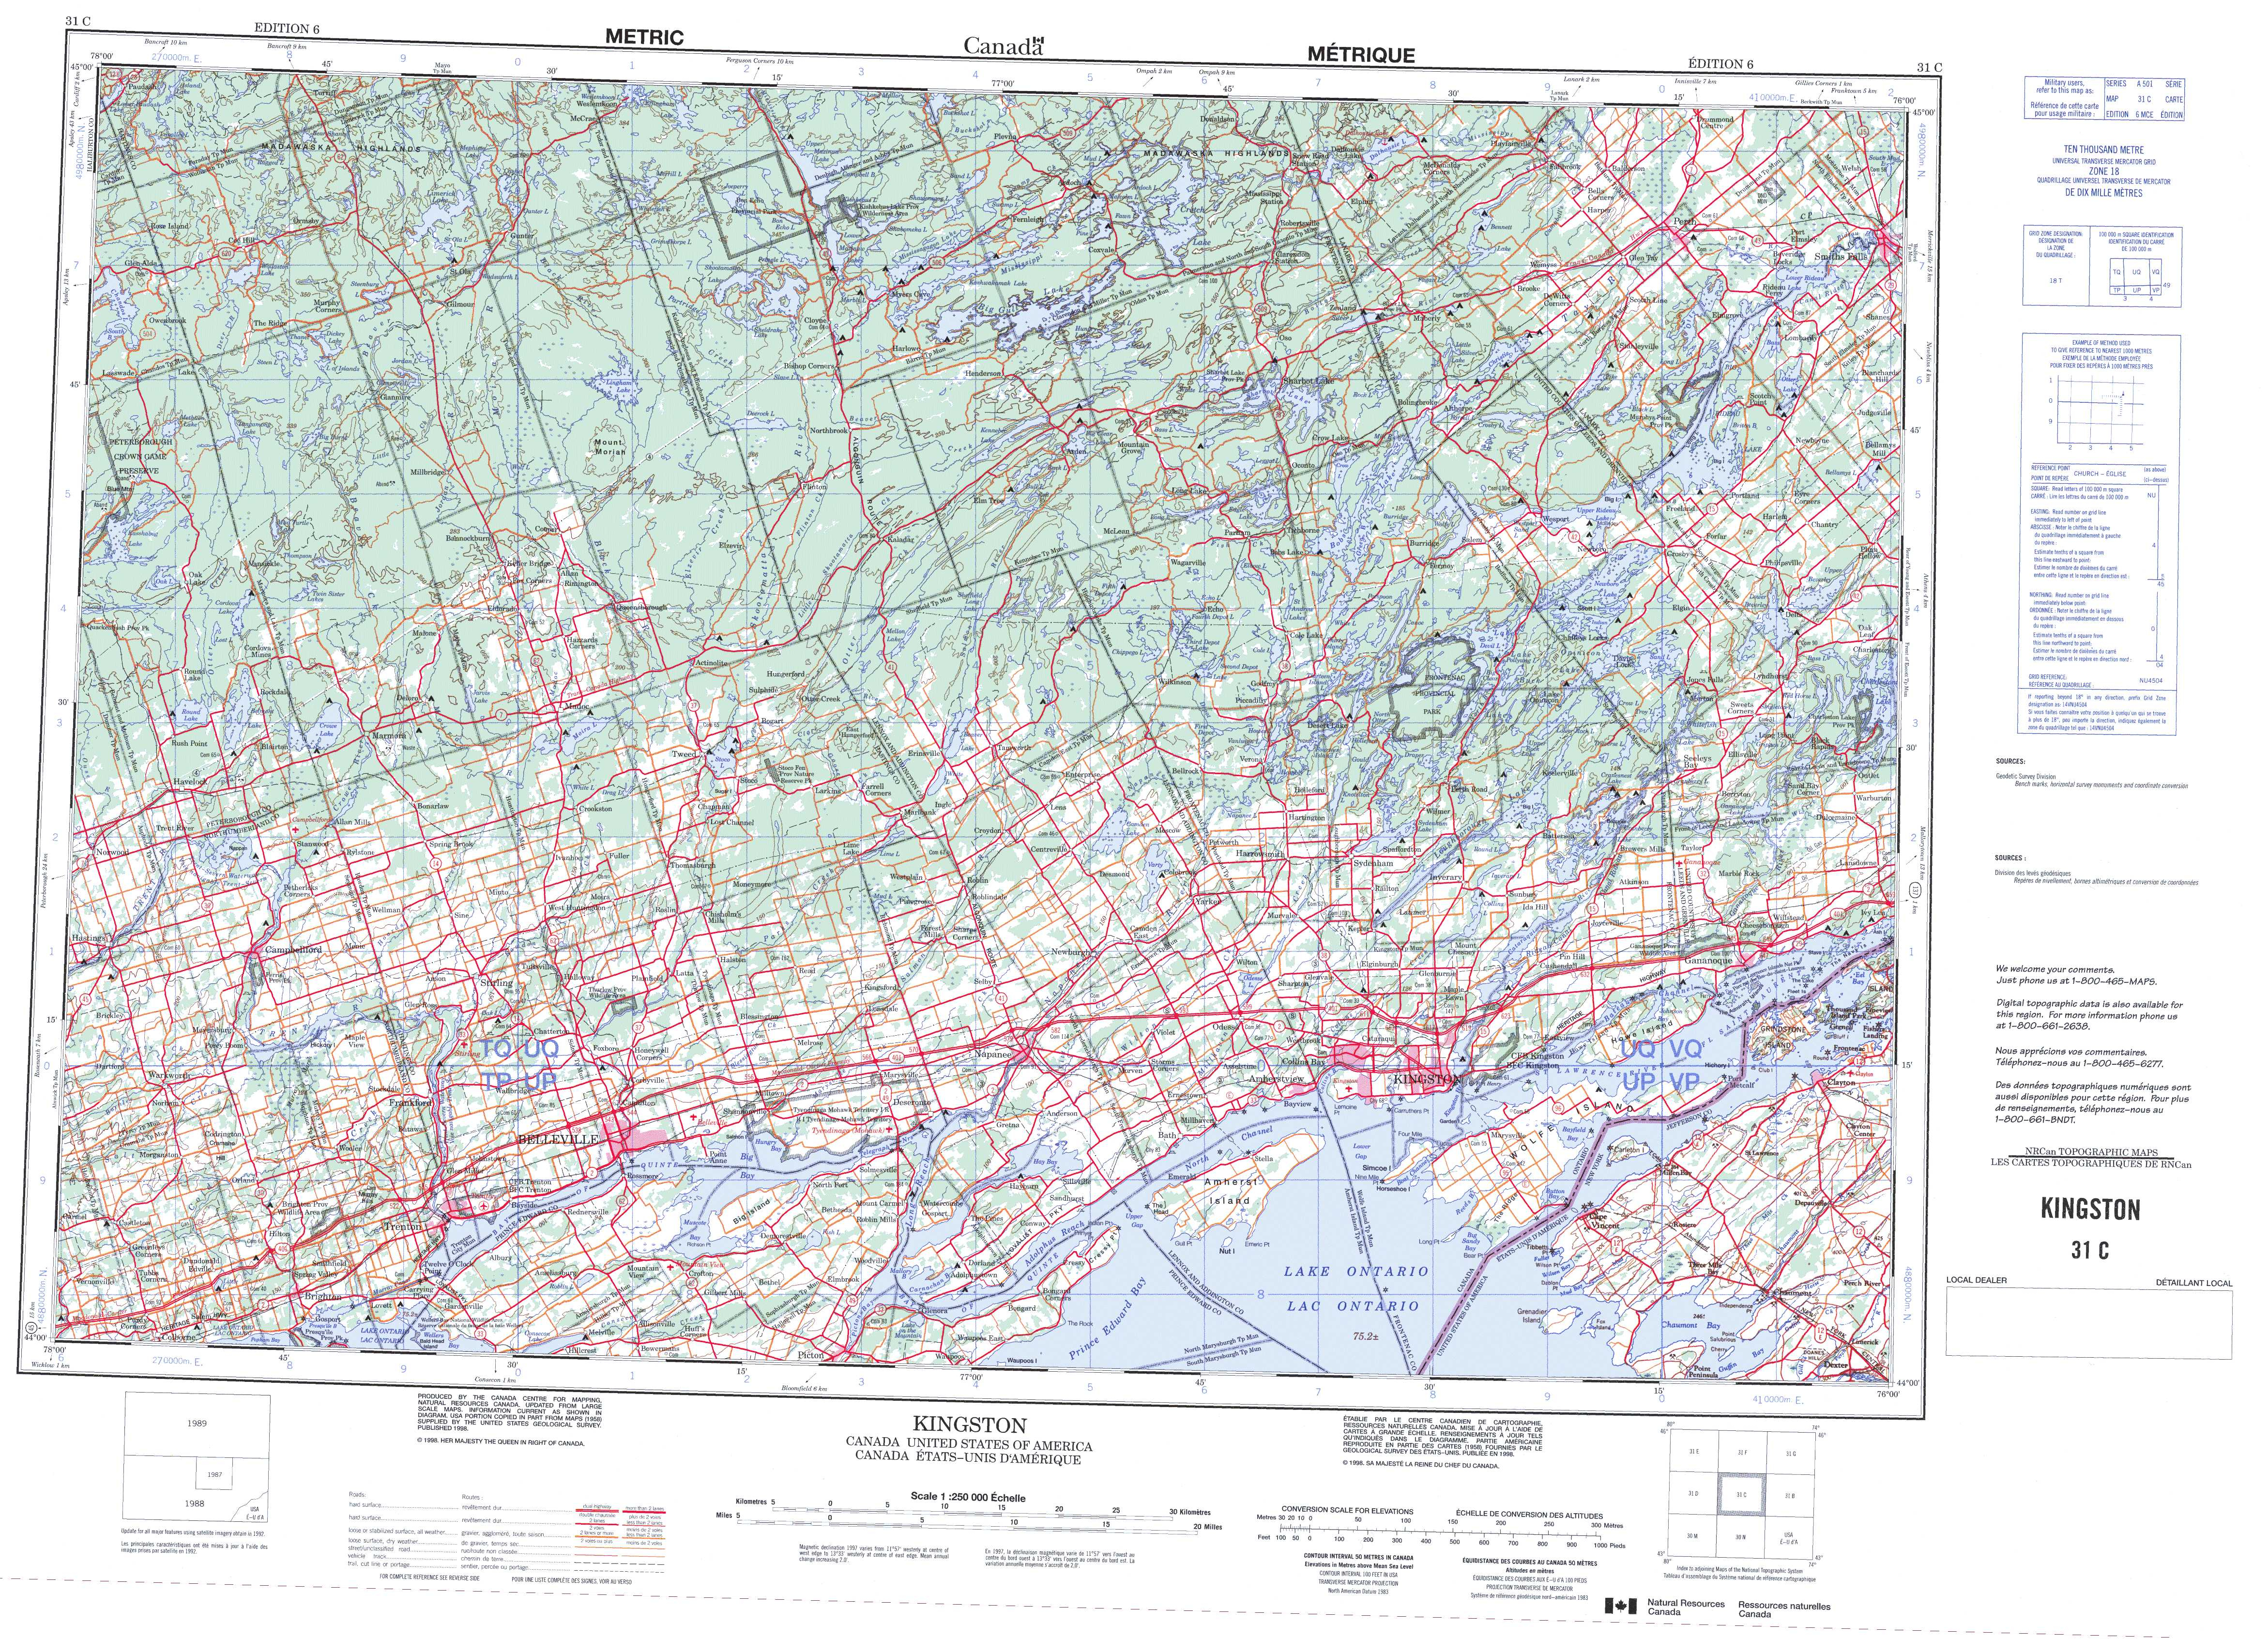 Printable Topographic Map Of Kingston 031C, On - Free Printable Topo Maps